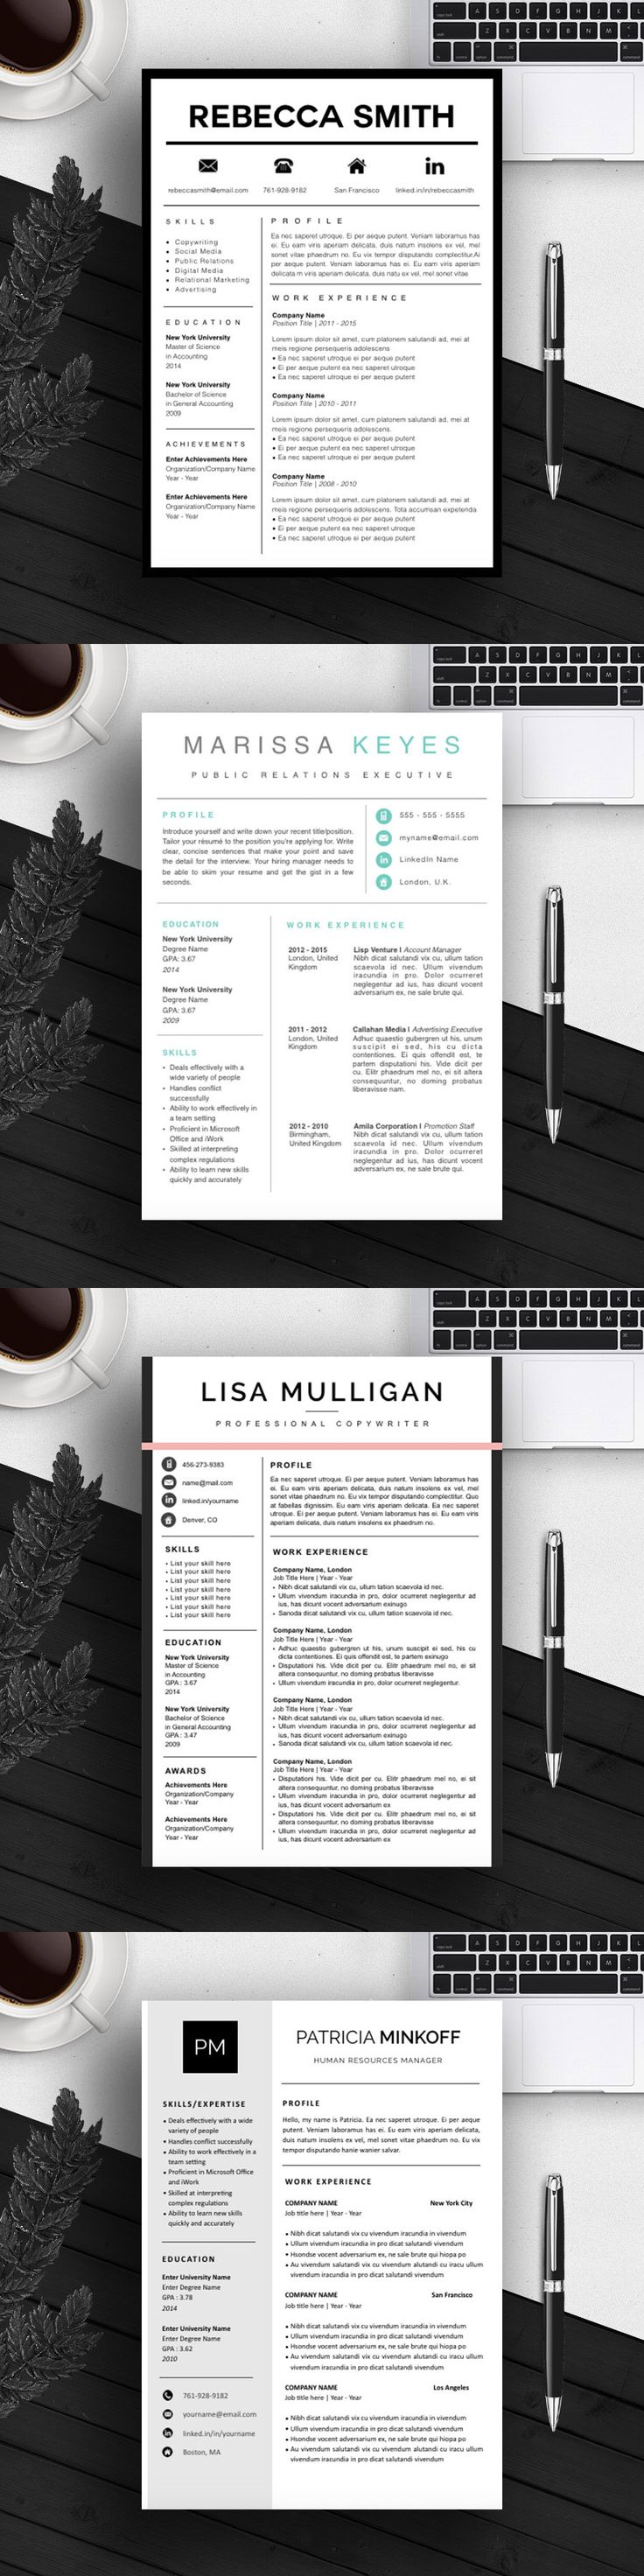 30 Best Resume Templates Images On Pinterest Resume Templates